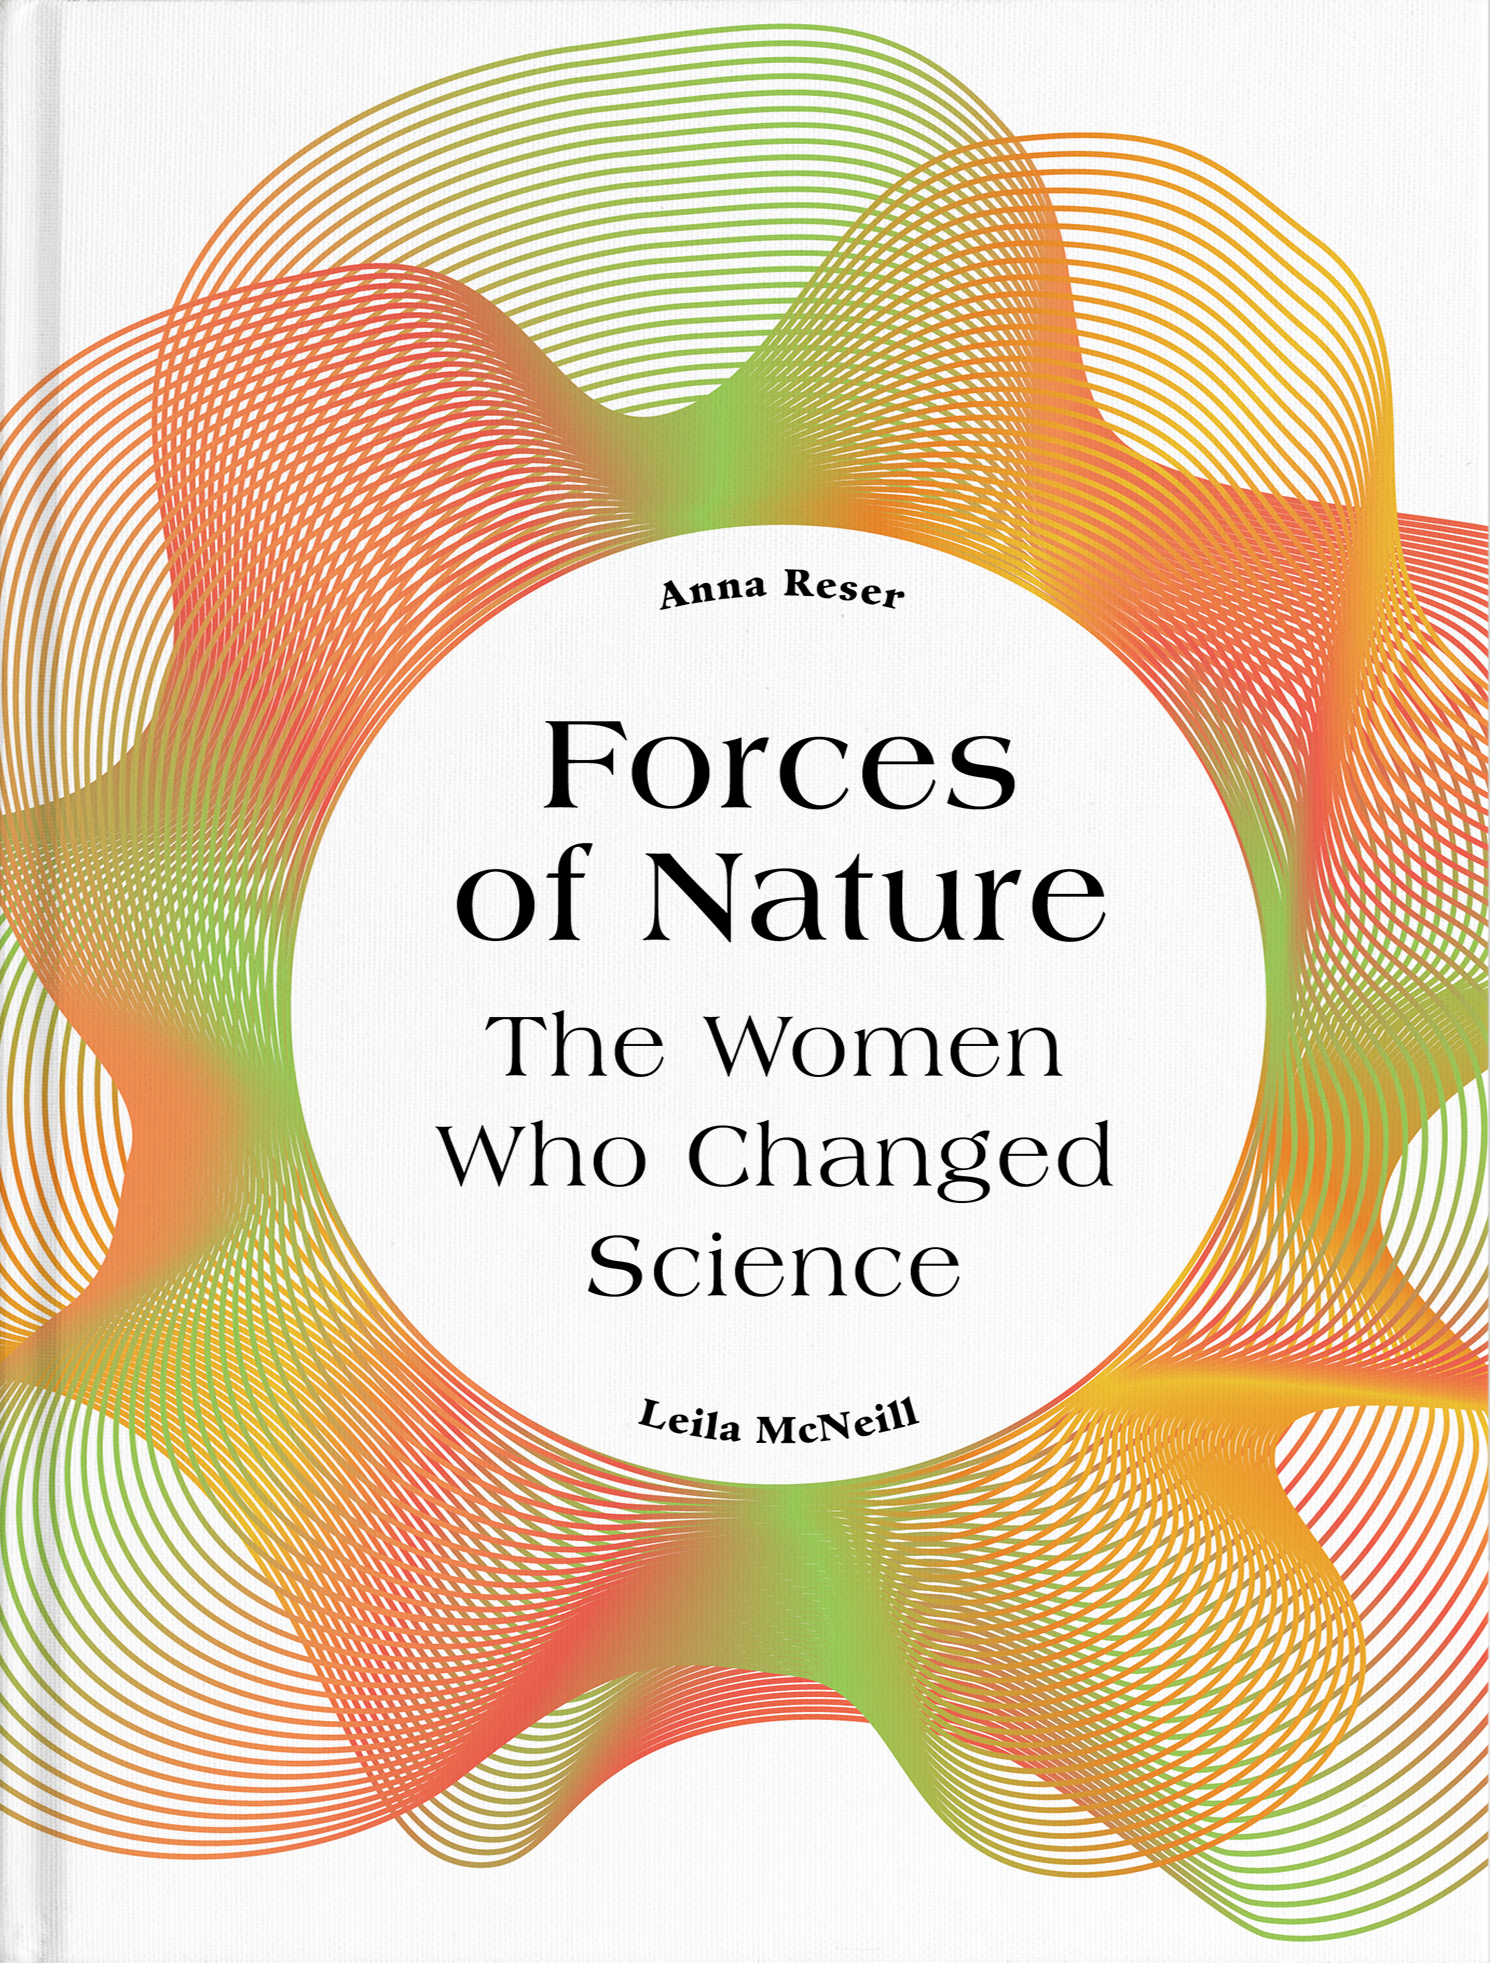 Forces of Nature book cover